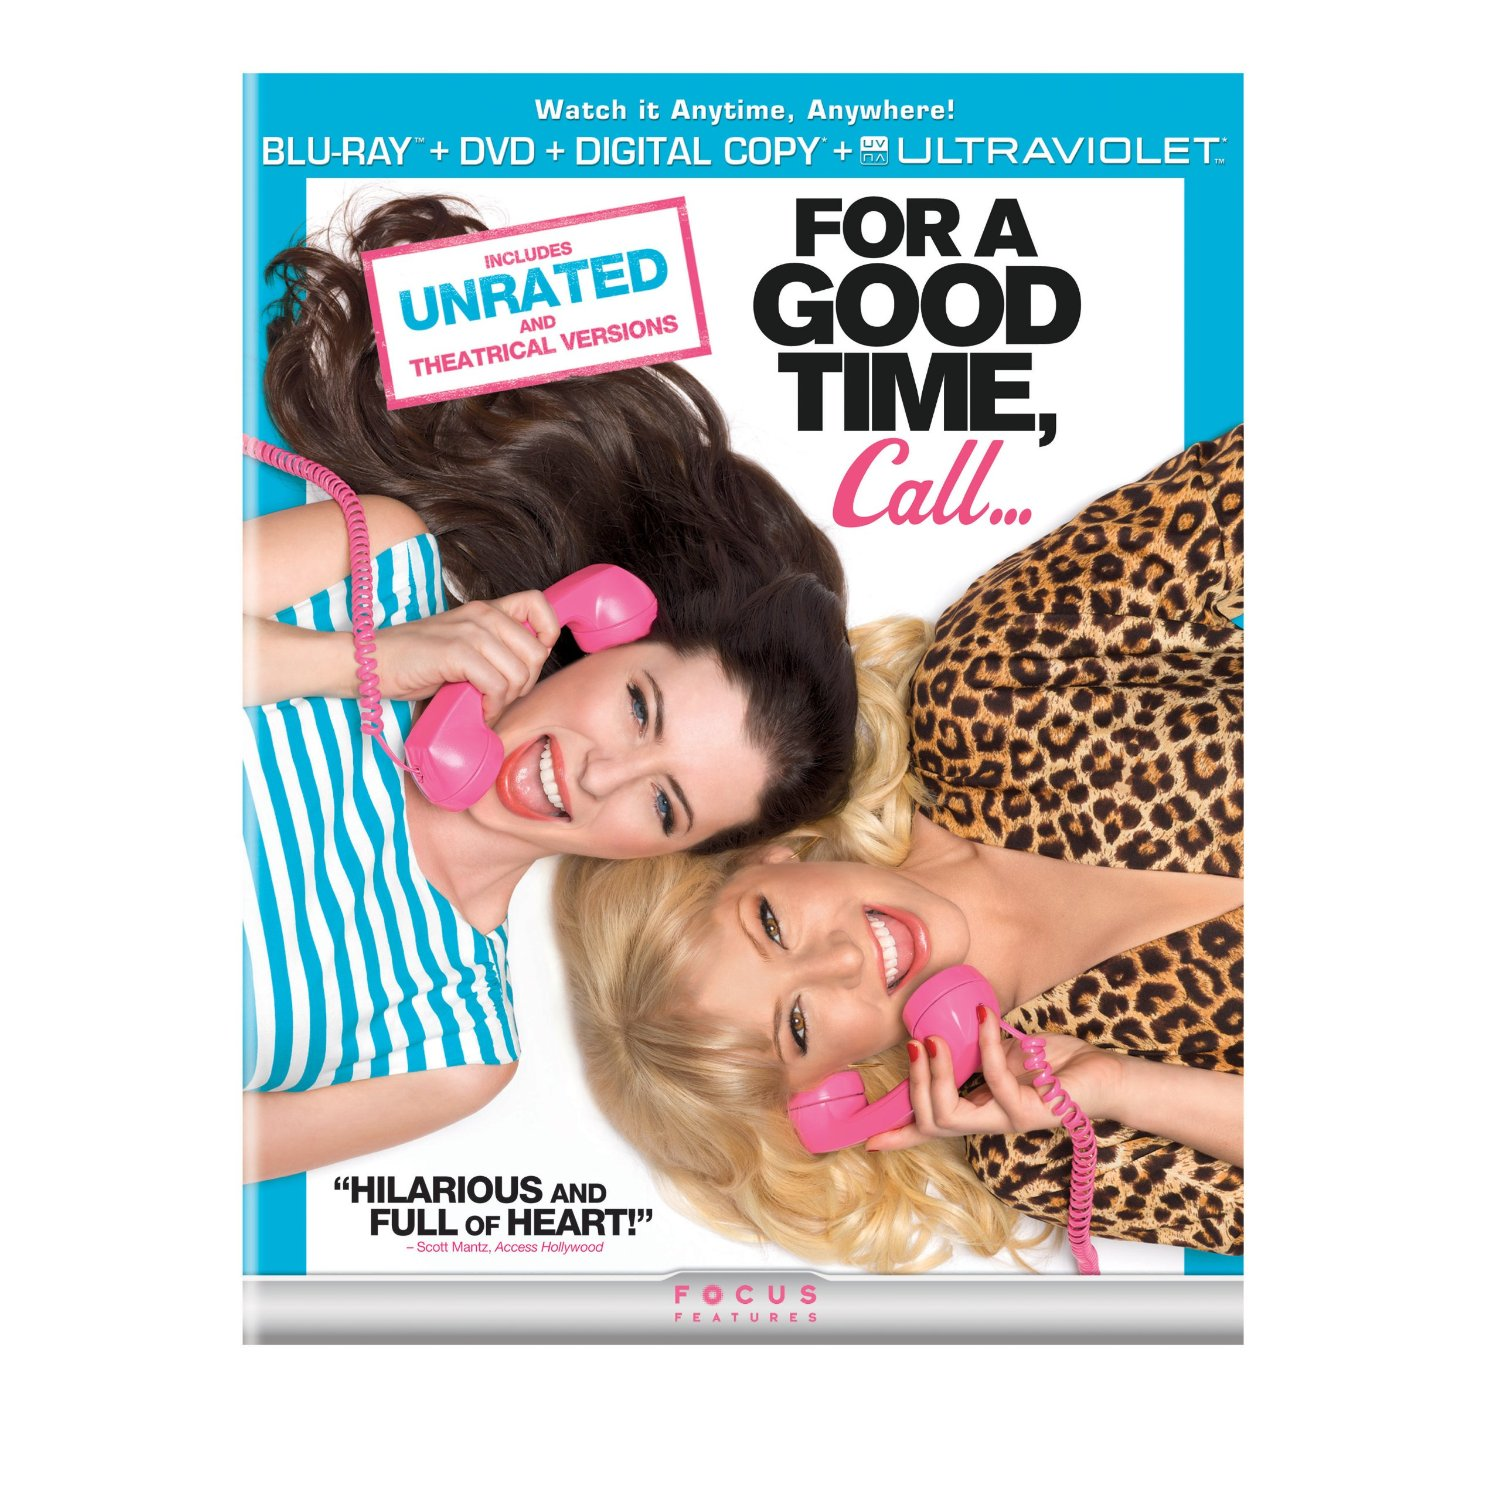 For a Good Time Call - Blu-ray + Ultraviolet Digital Copy 36C-G30-MCABR6212371